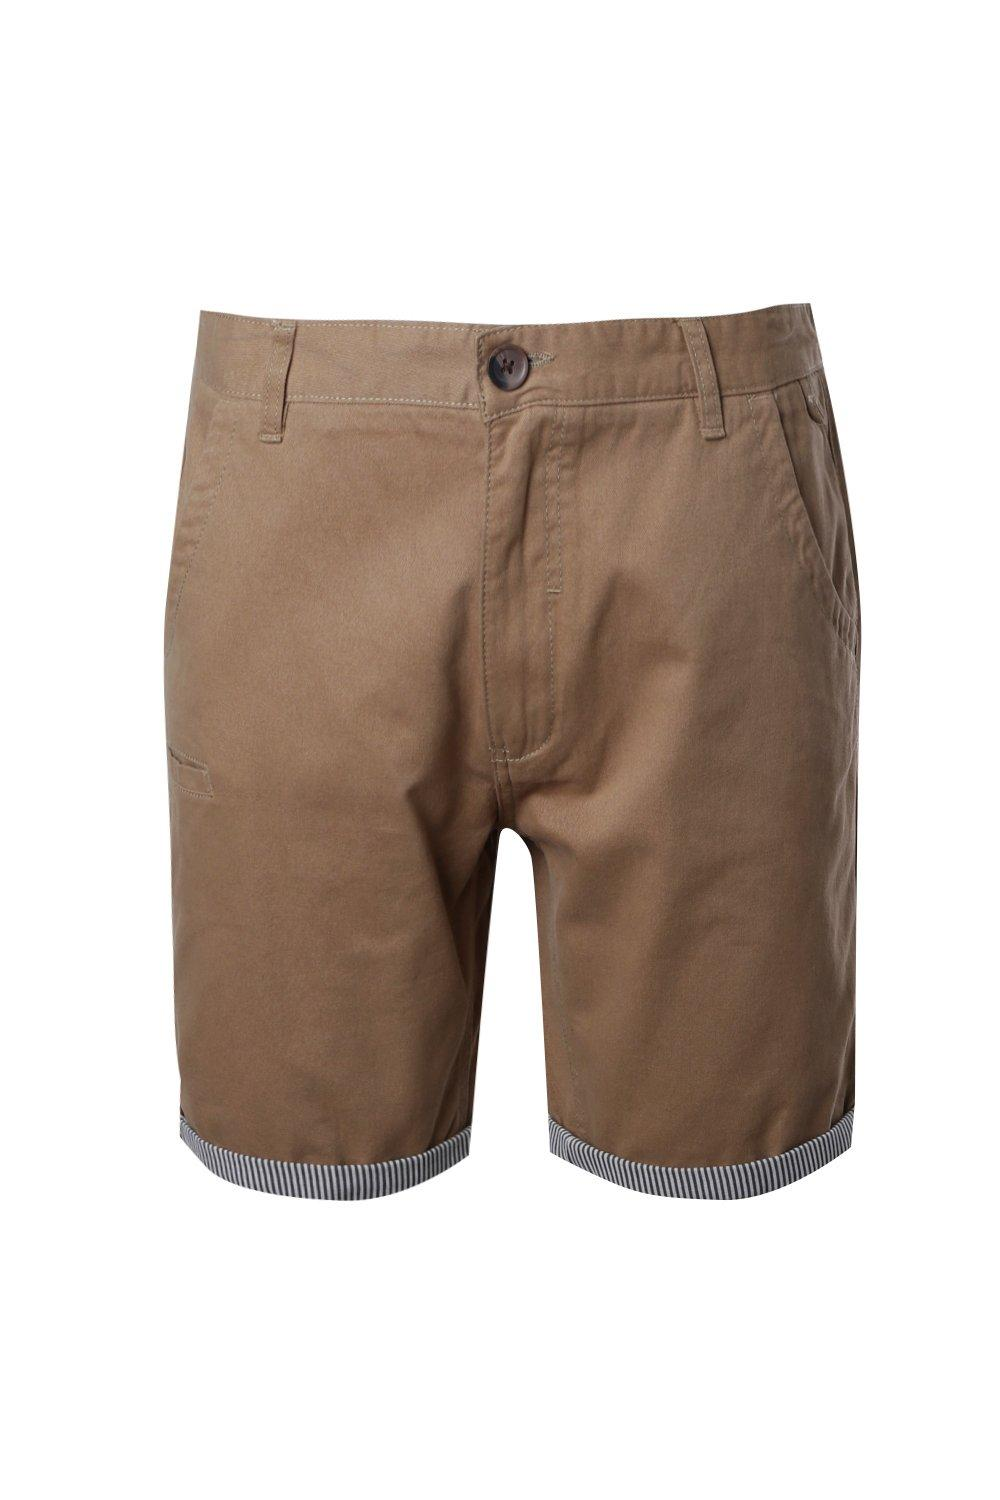 boohooMAN stone Chino Shorts With Stripe Turn Up